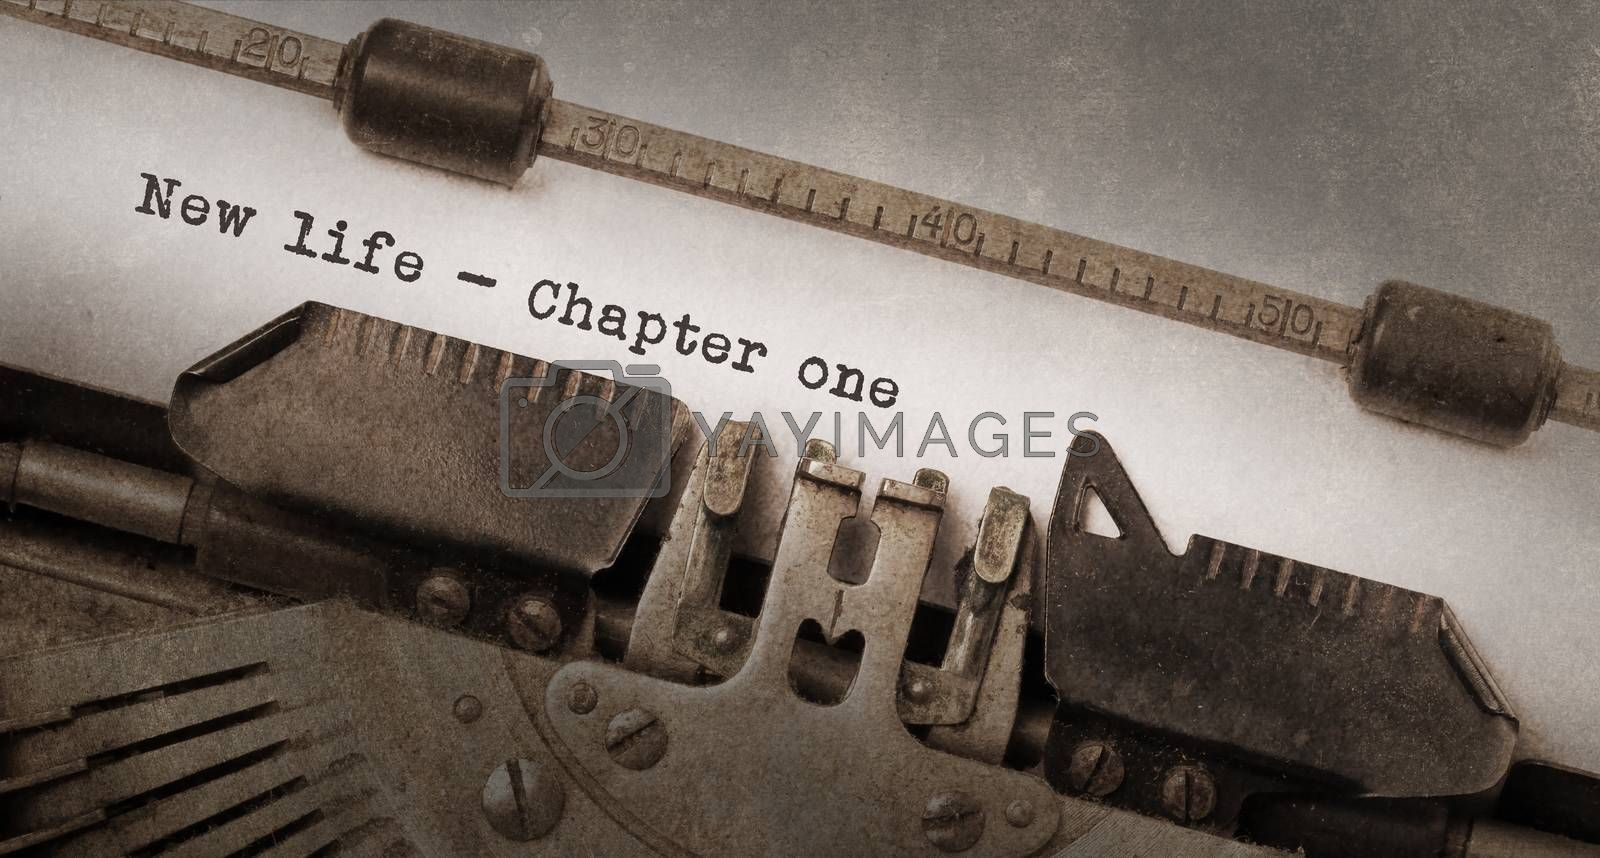 Vintage typewriter, old rusty and used, new life chapter 1